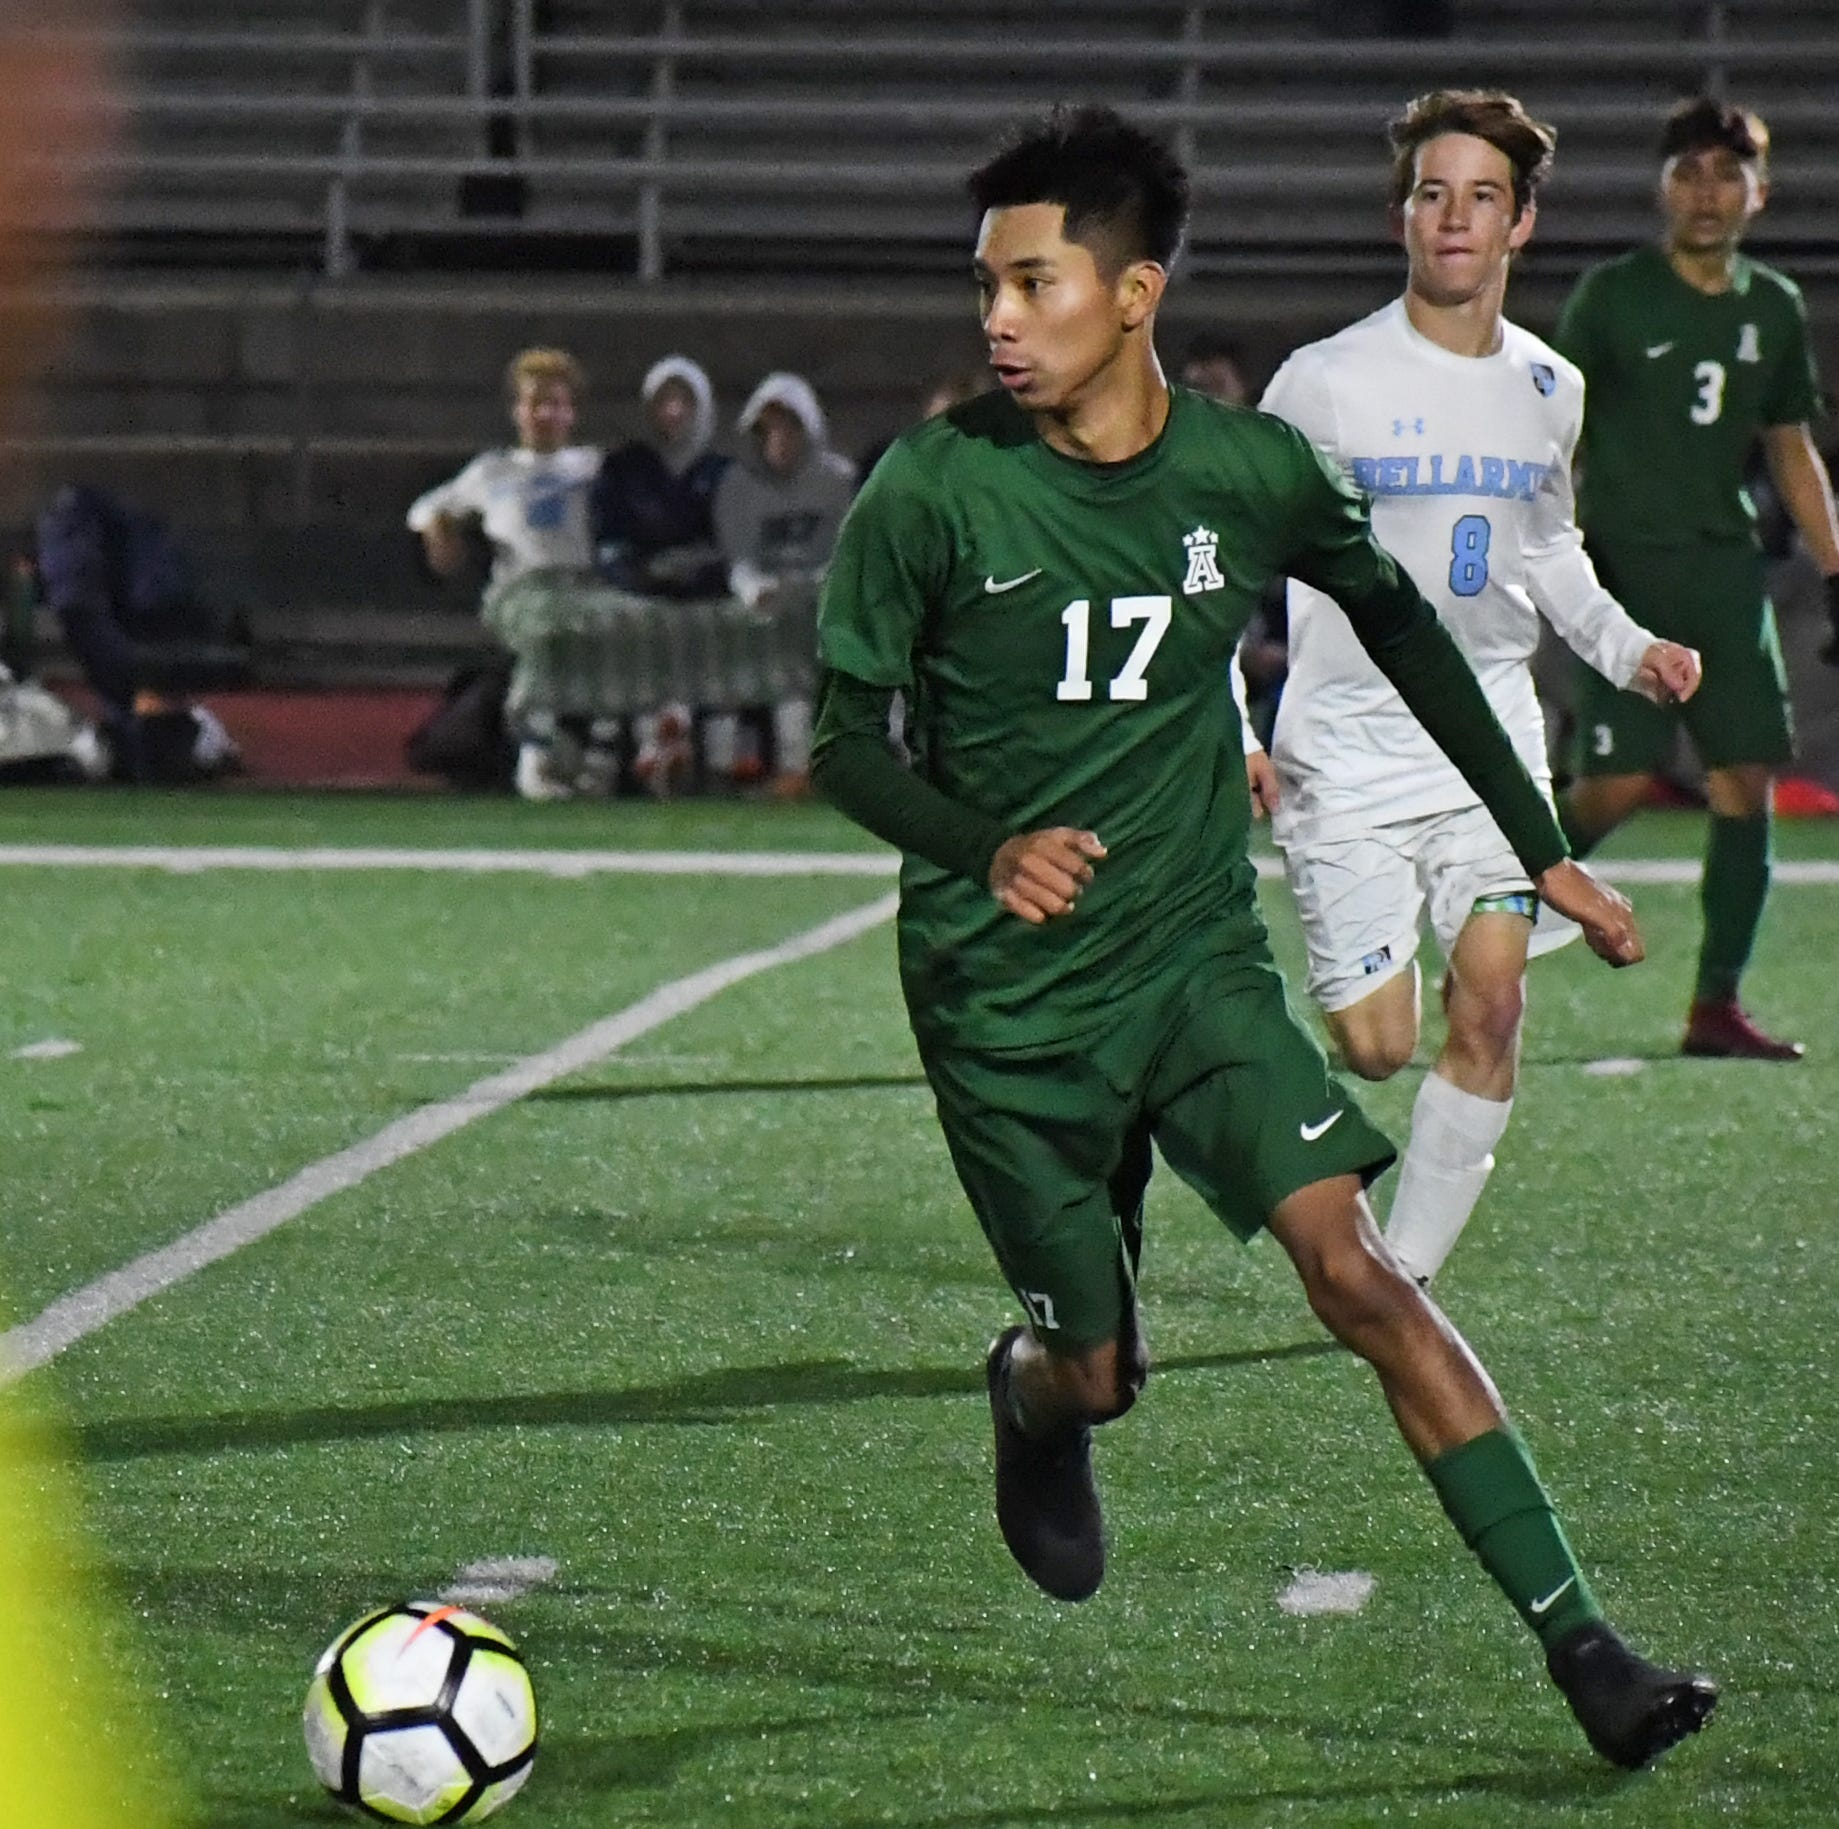 Alisal ties state powerhouse before heading to Adidas Showcase